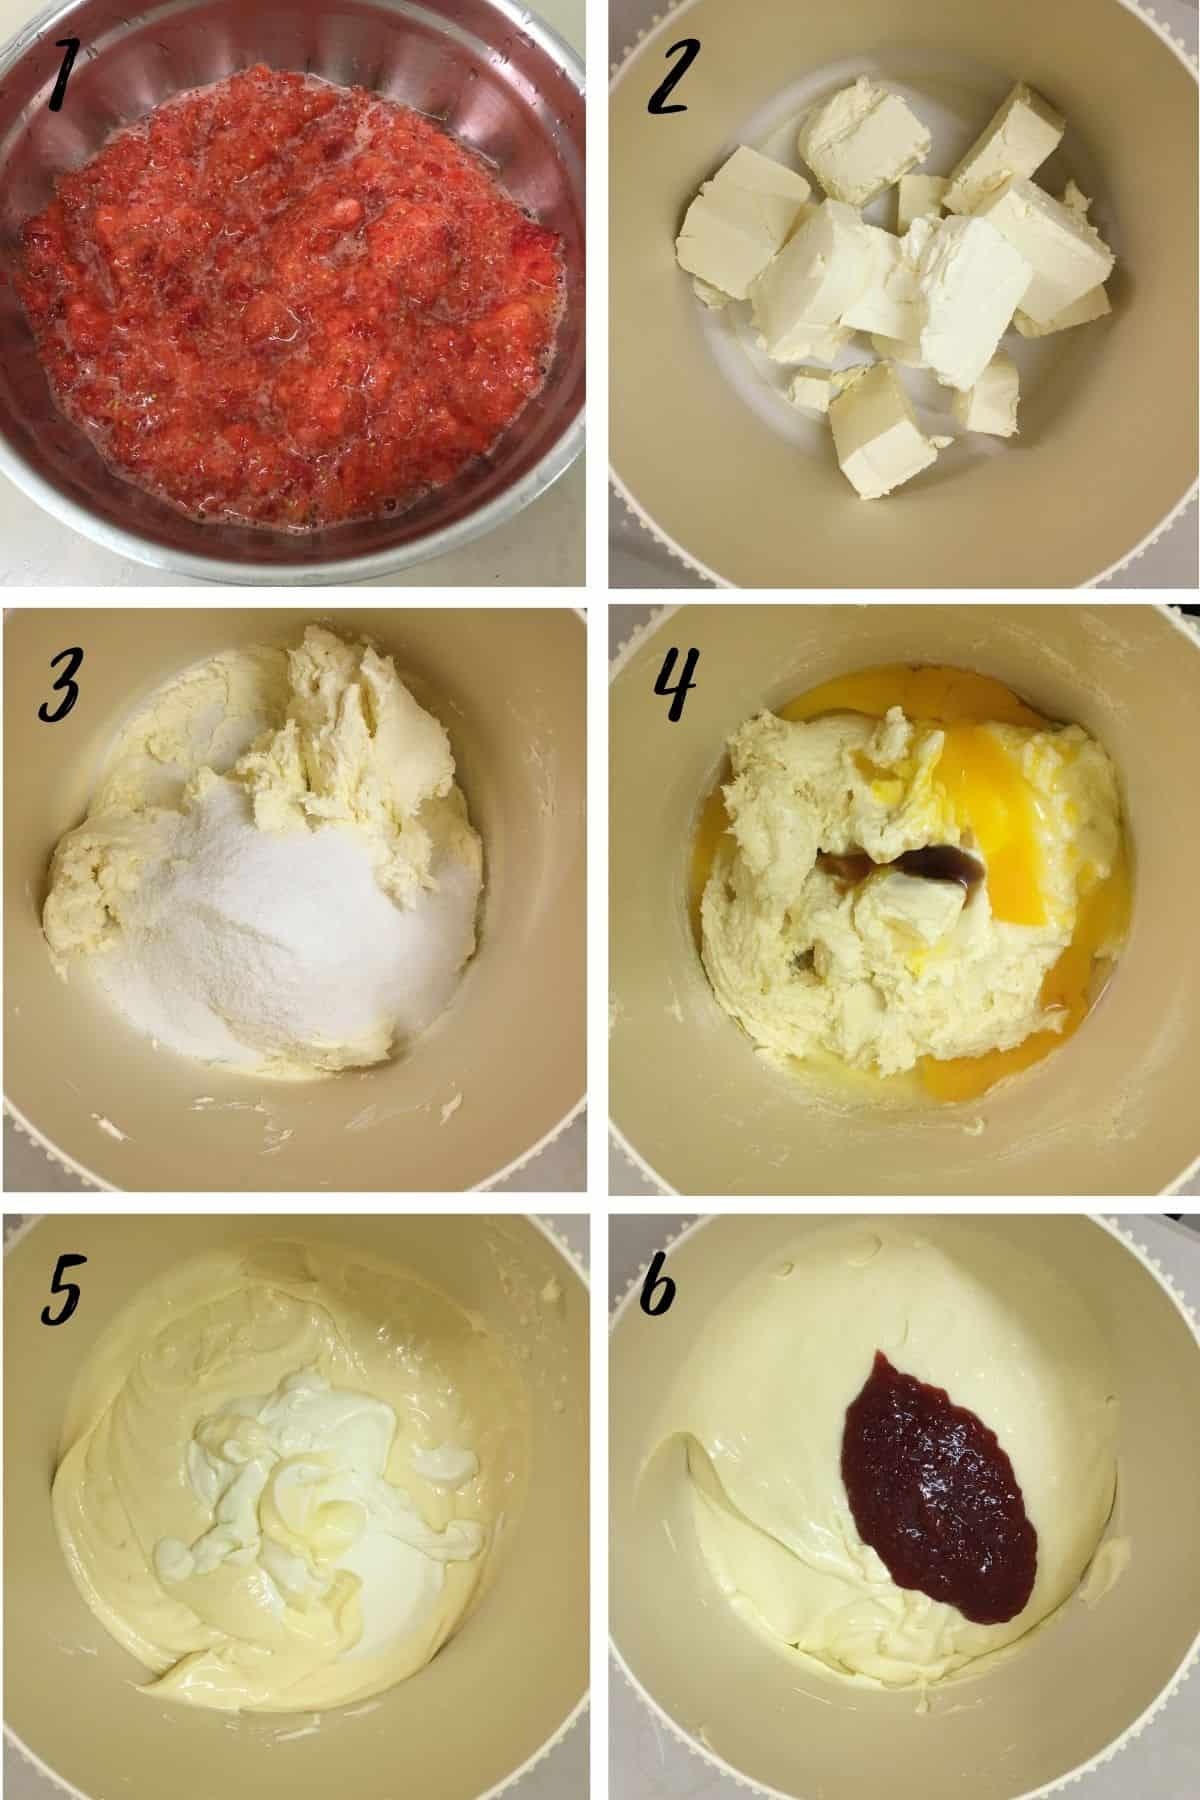 A poster of 6 images showing how to mix strawberry cheesecake batter